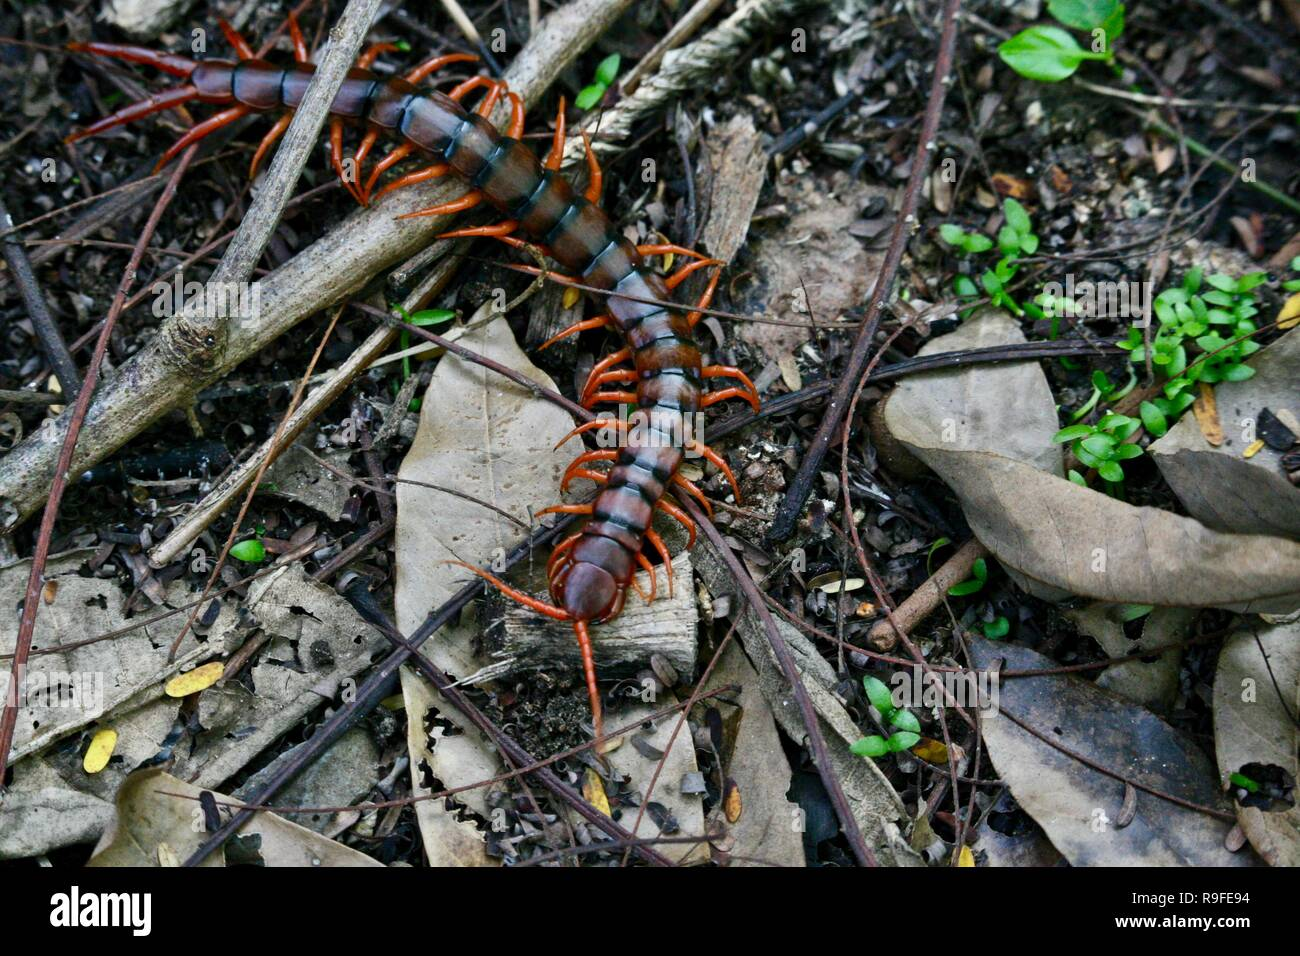 A centipede crawling along the jungle floor in Cambodia - Stock Image